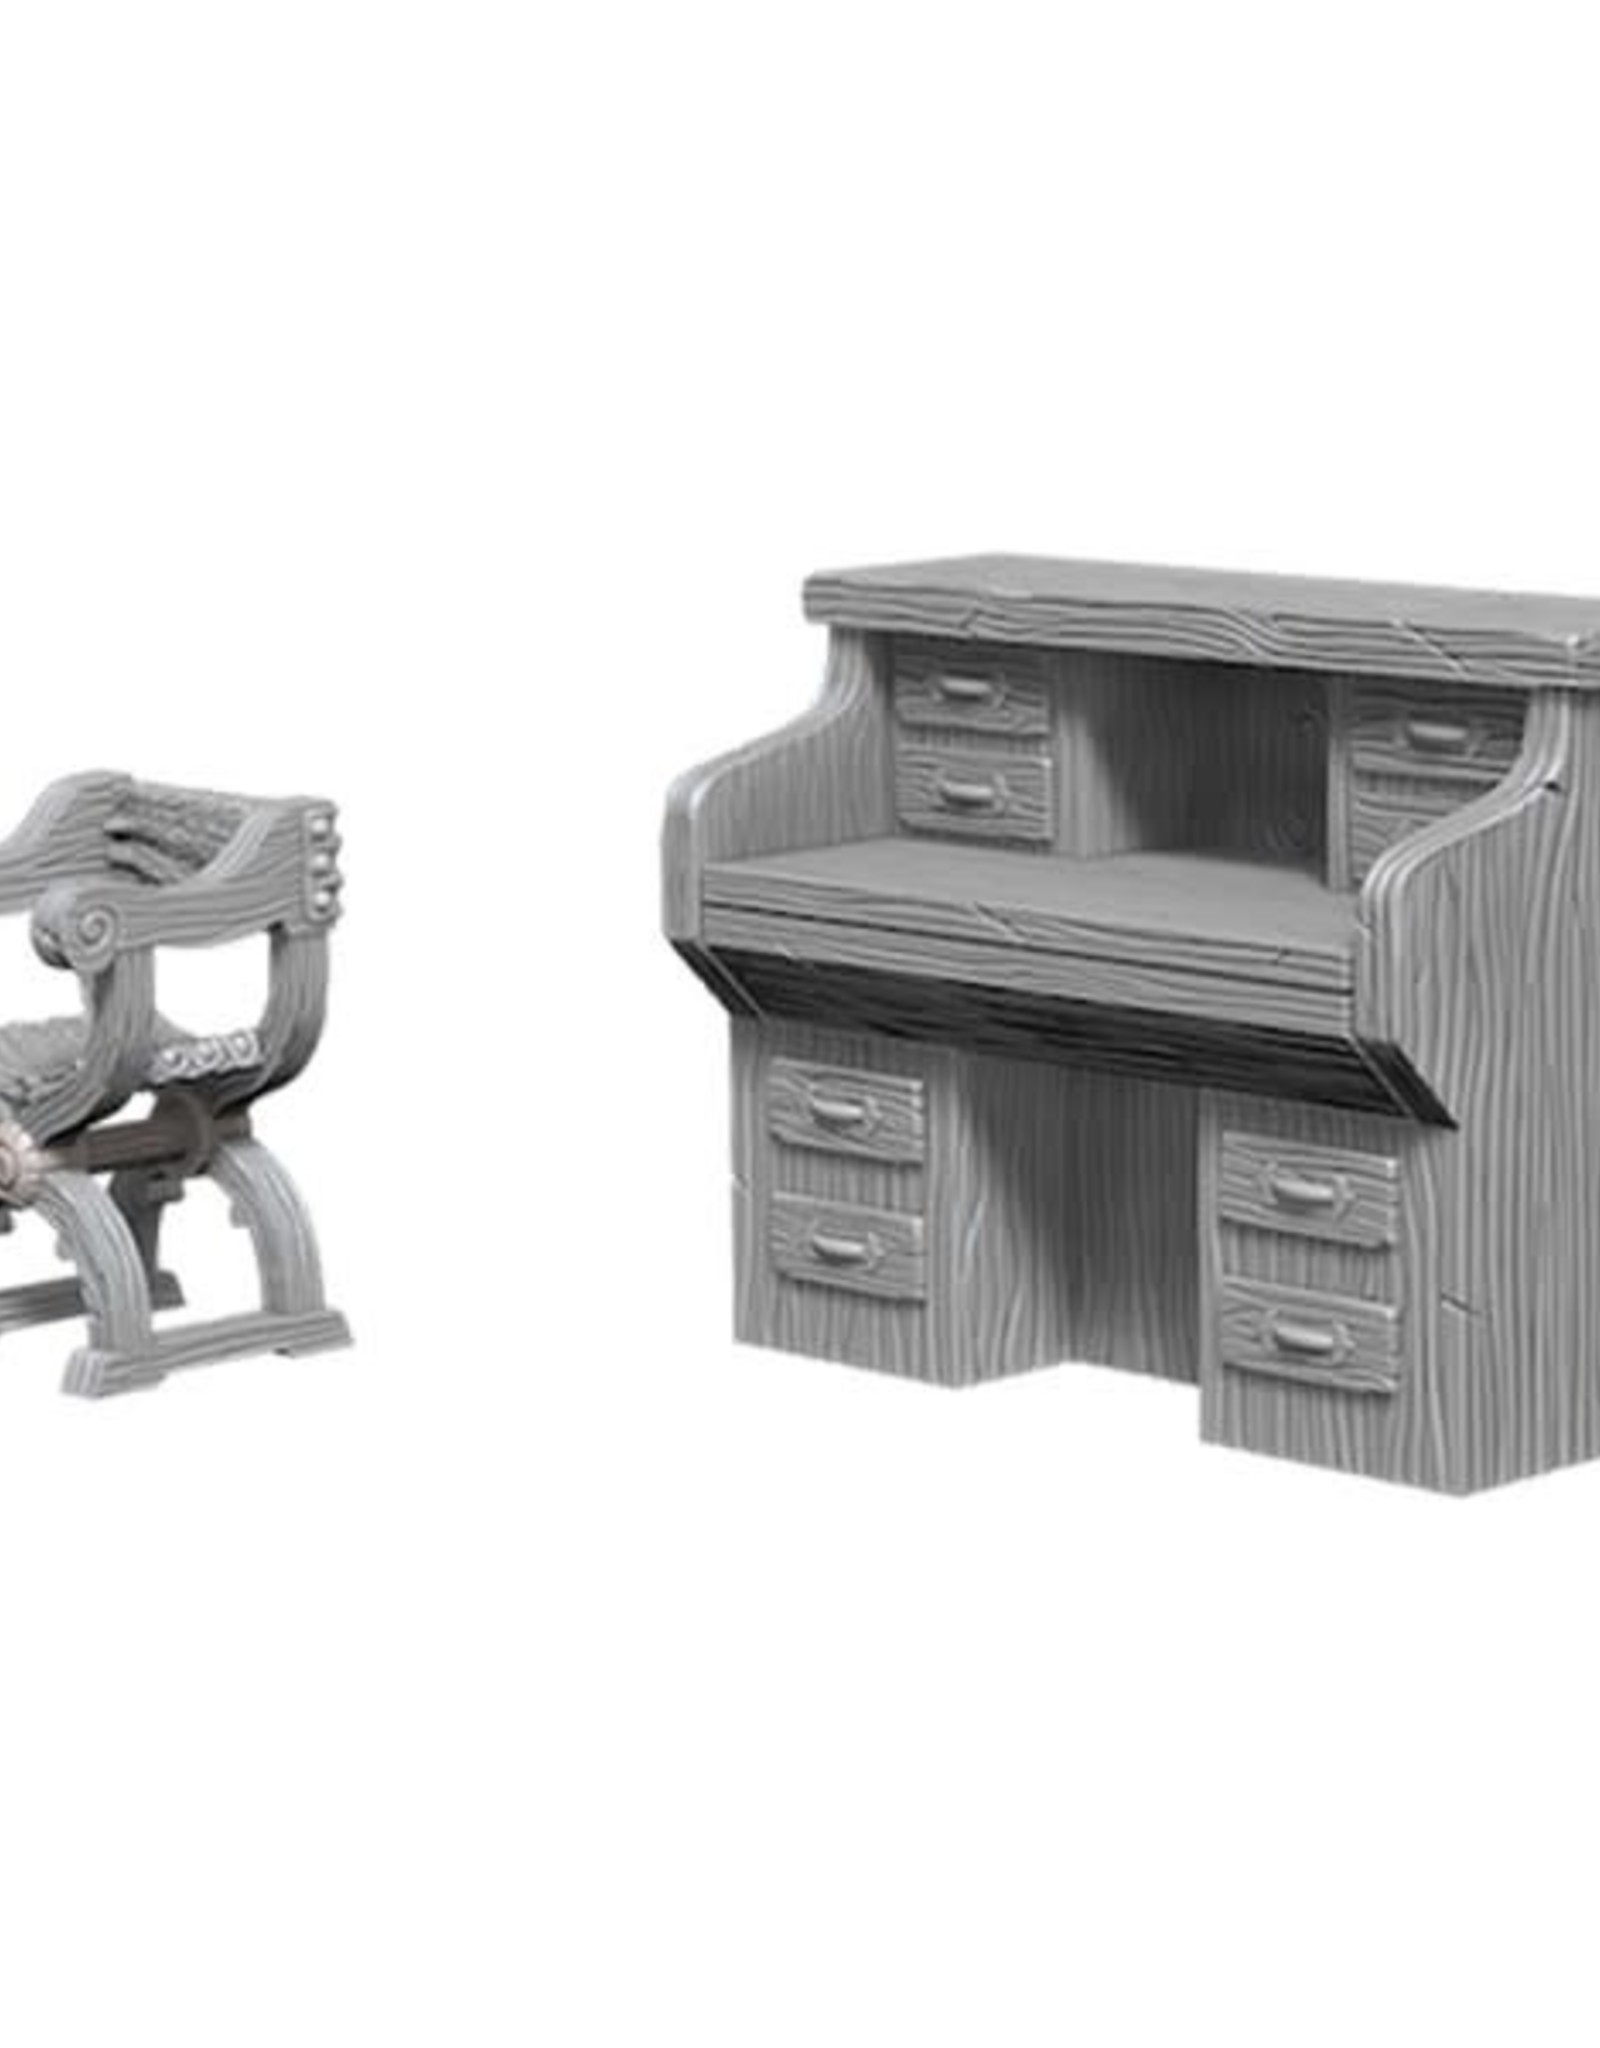 WizKids Deep Cuts Desk and Chairs